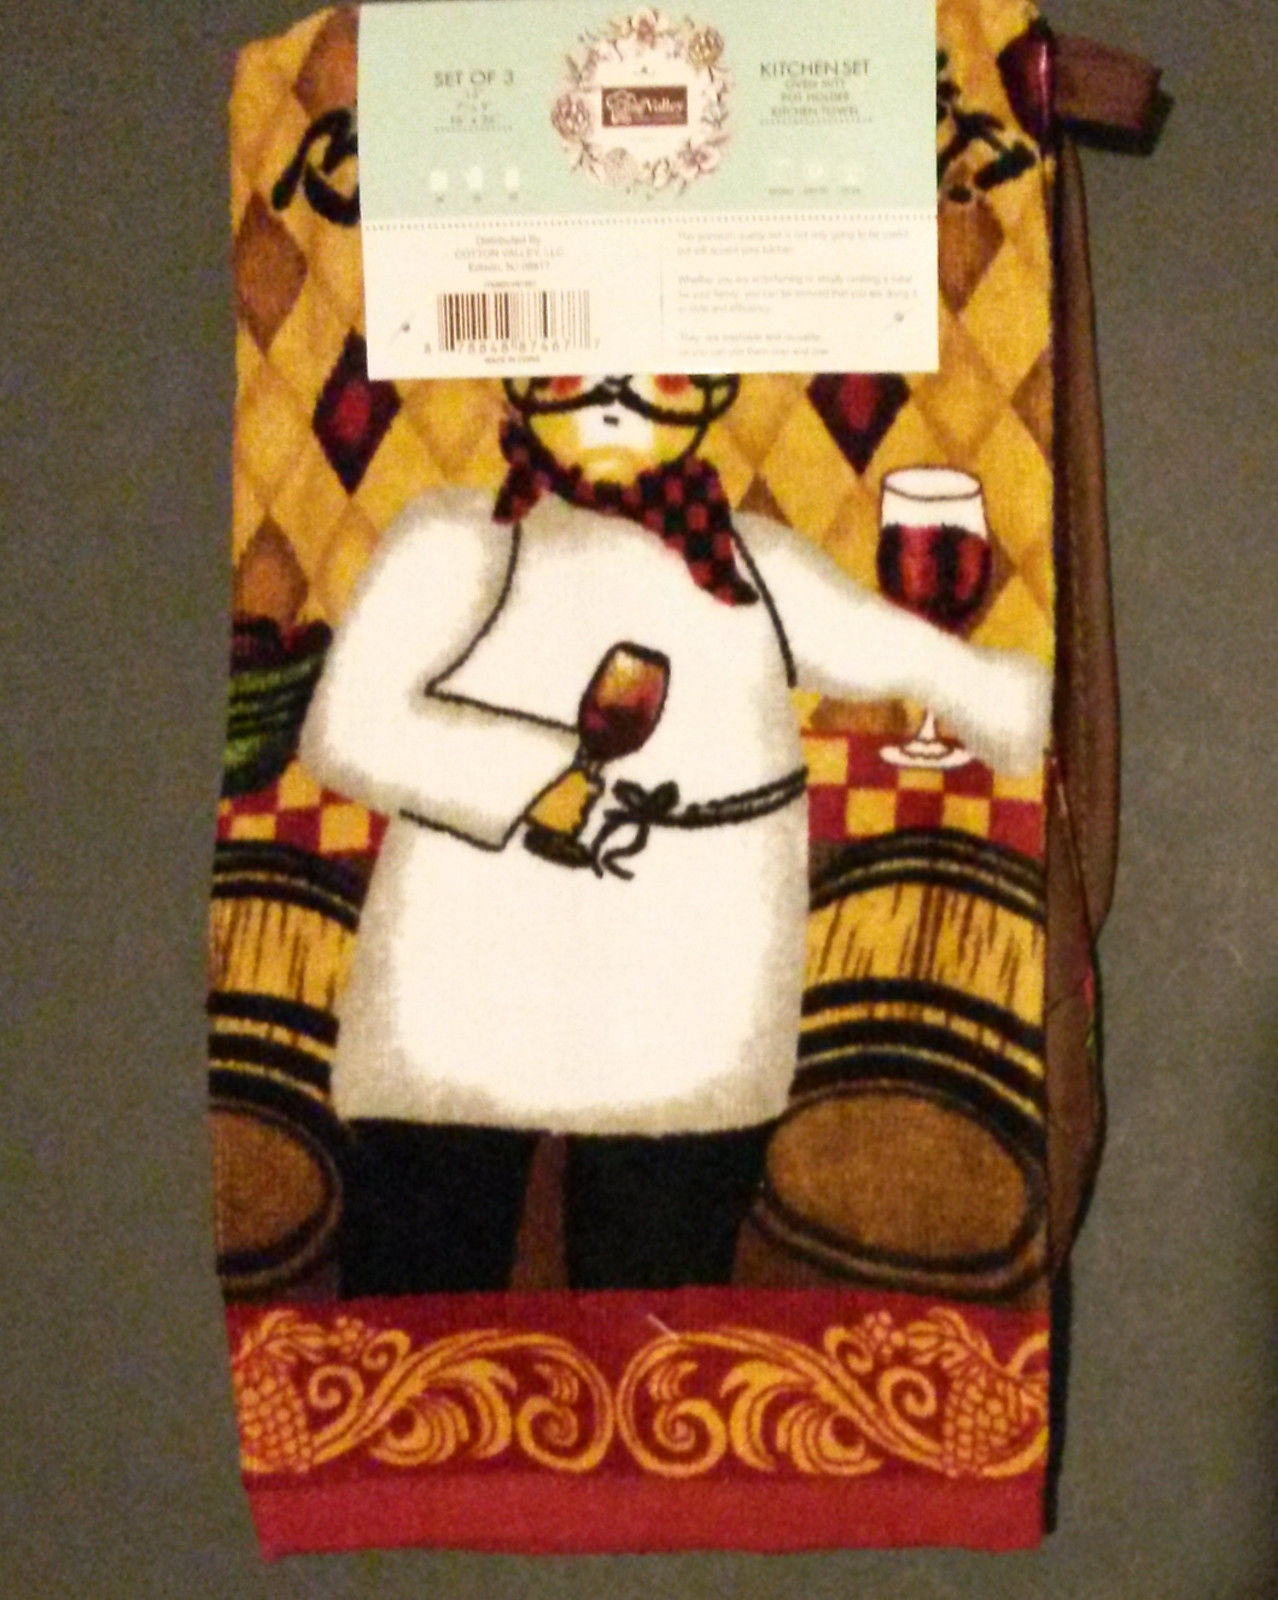 WINE CHEF theme KITCHEN TOWEL SET 3-pc Fat Chef with Oven Mitt Potholder NEW